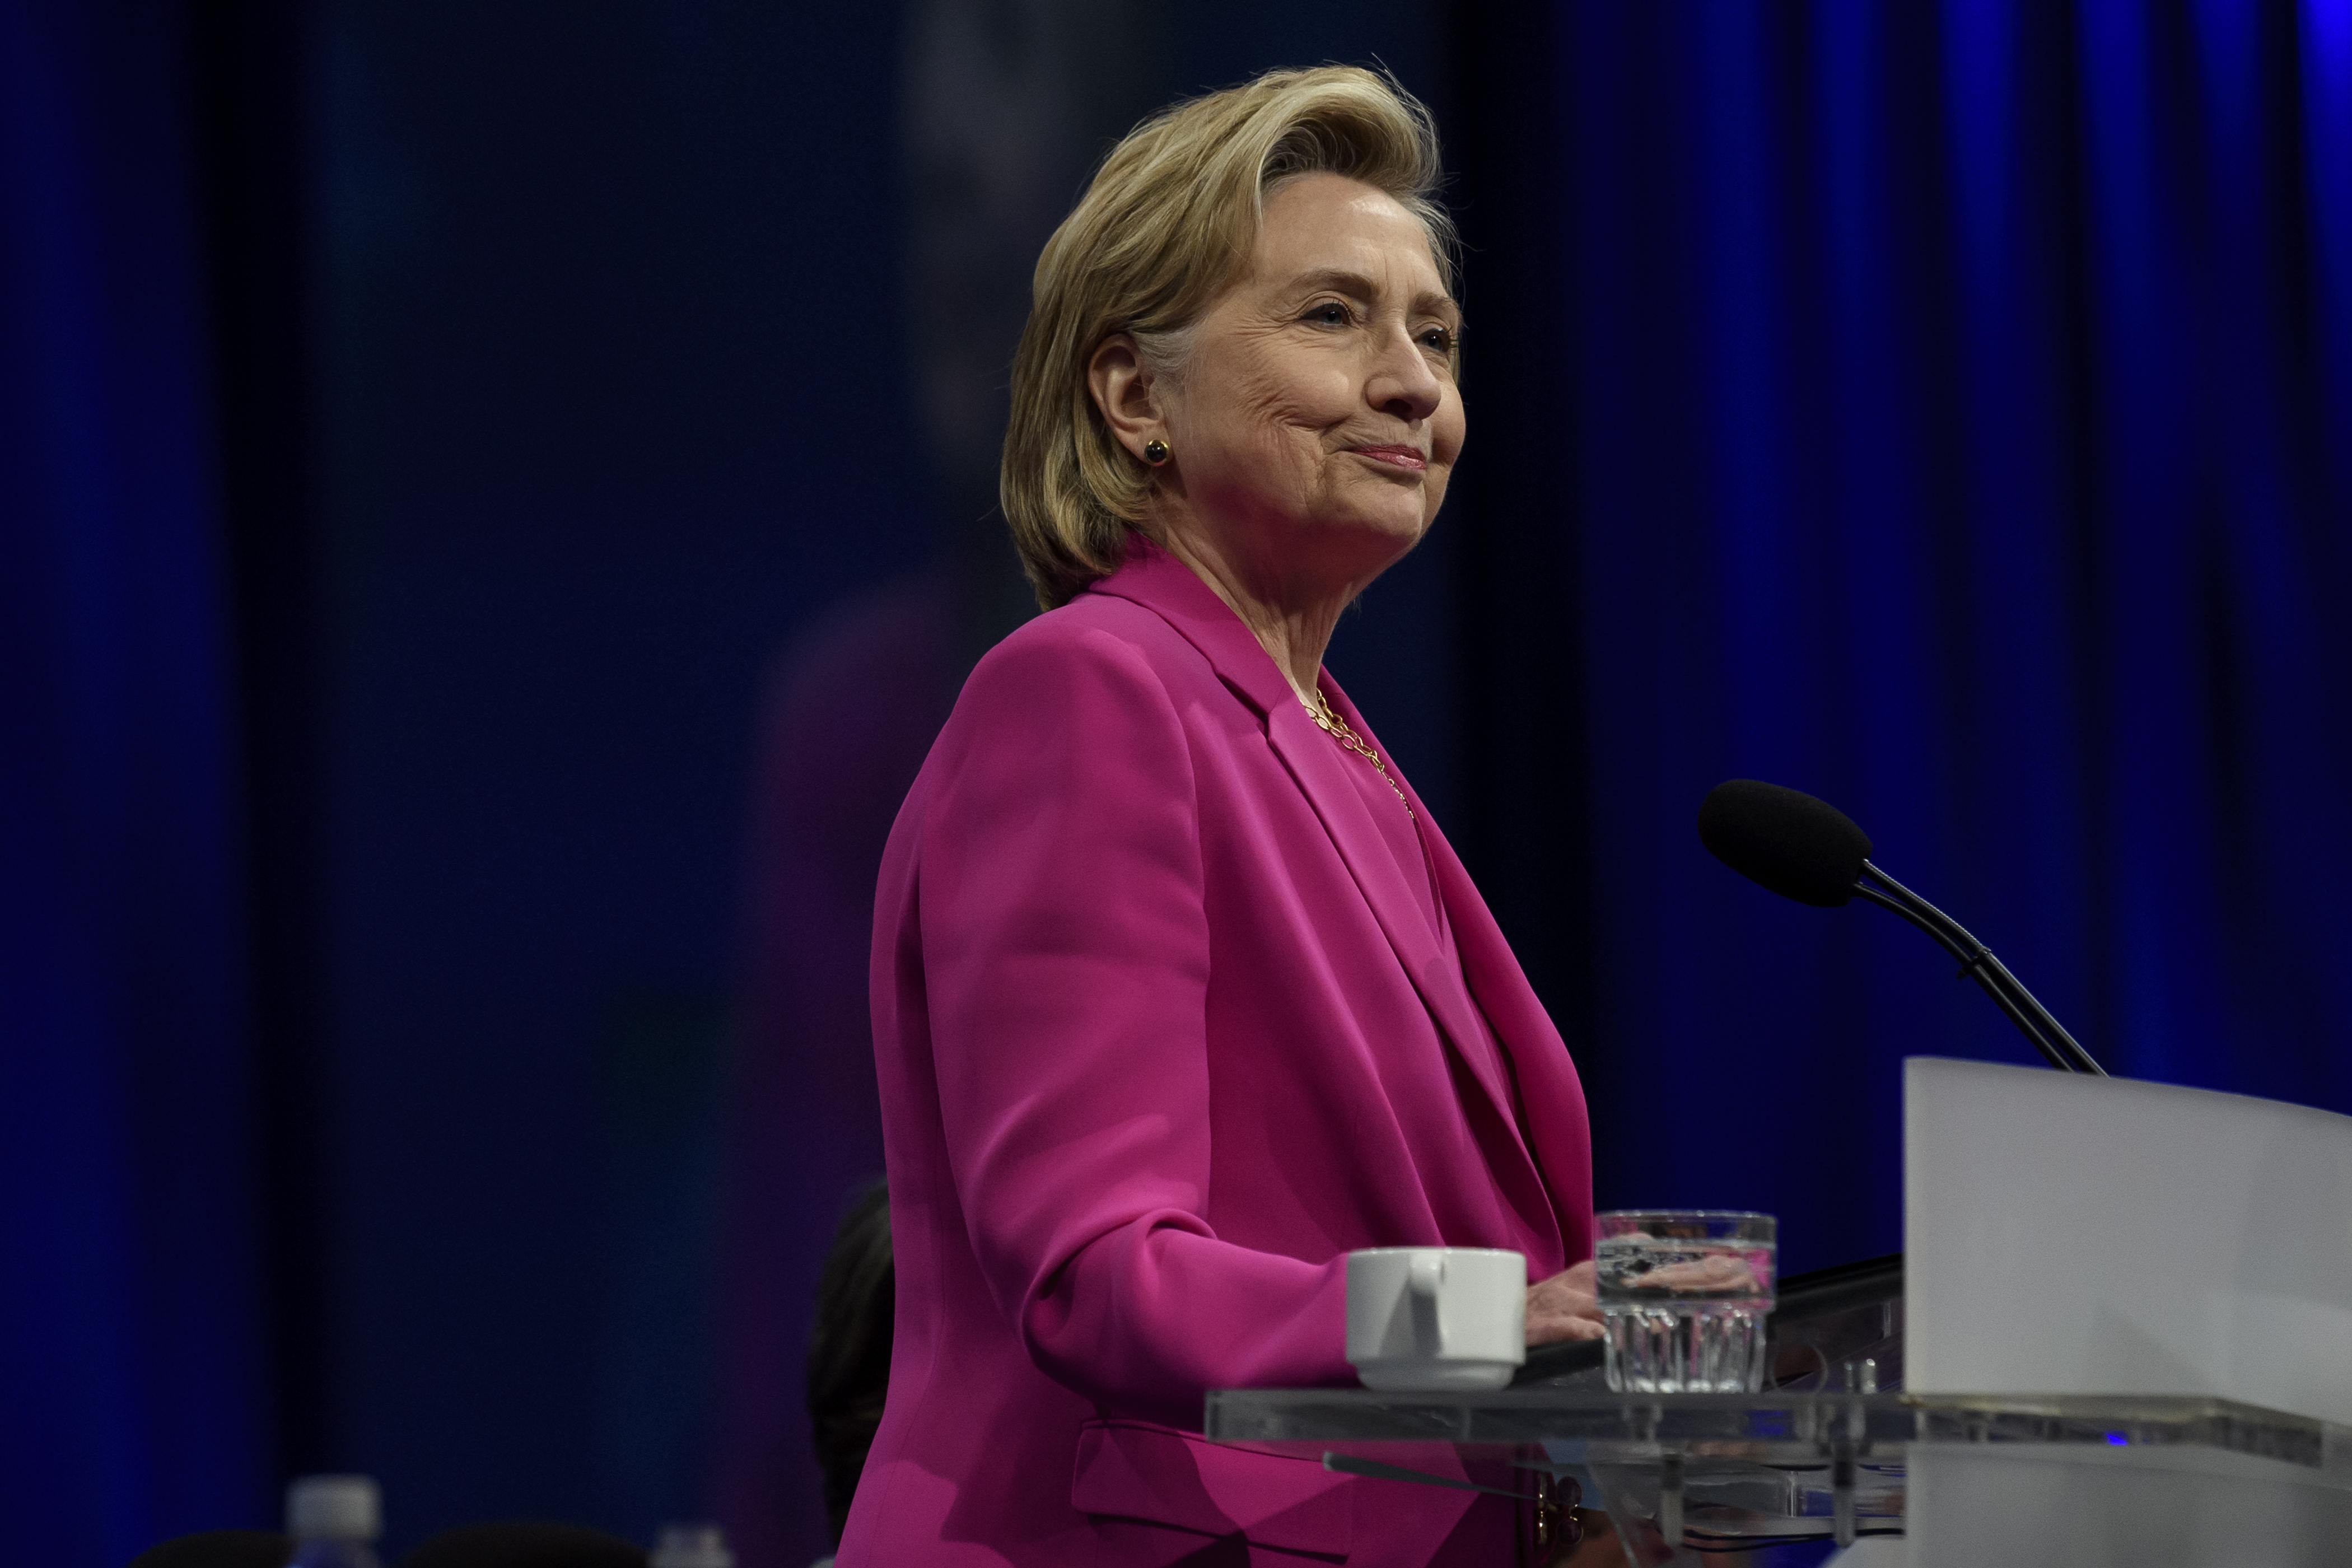 Former Secretary of State Hillary Clinton speaks to the audience at the annual convention of the American Federation of Teachers, in Pittsburgh, Penn. on July 13, 2018.